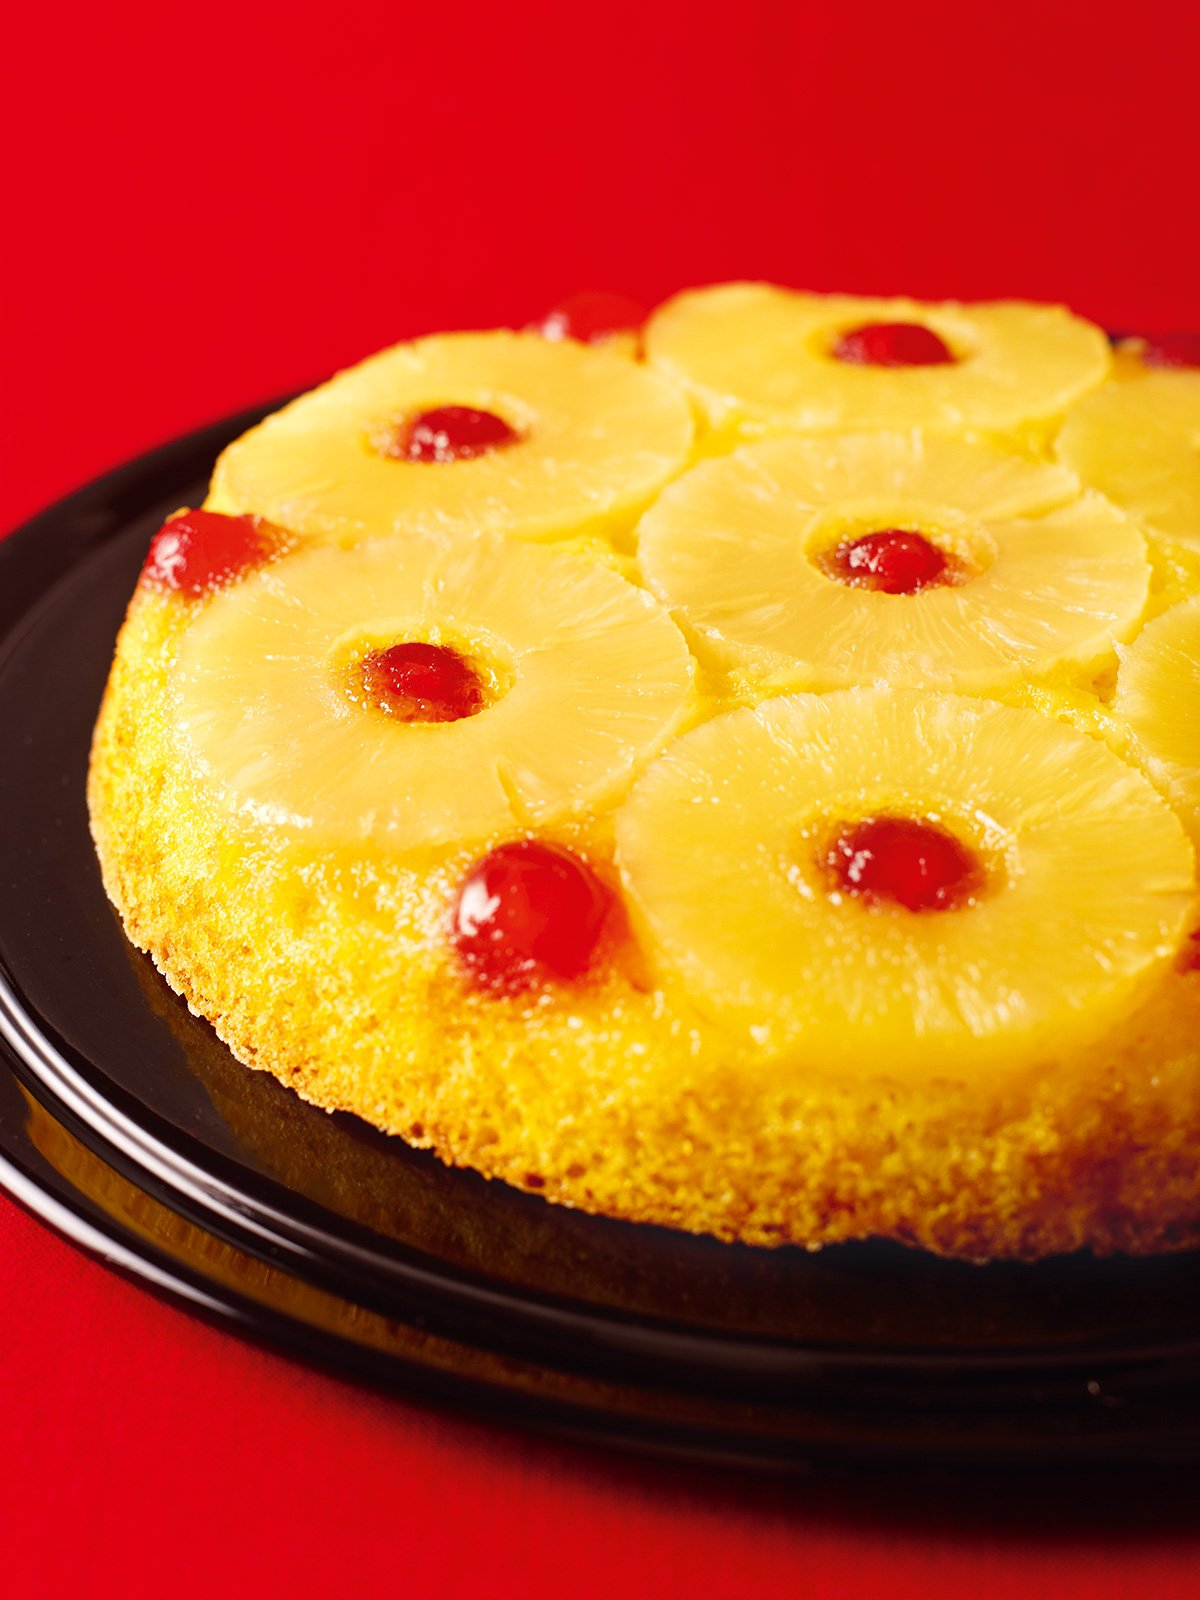 Pineapple Upside Down Cake | Nigella's Recipes | Nigella ...